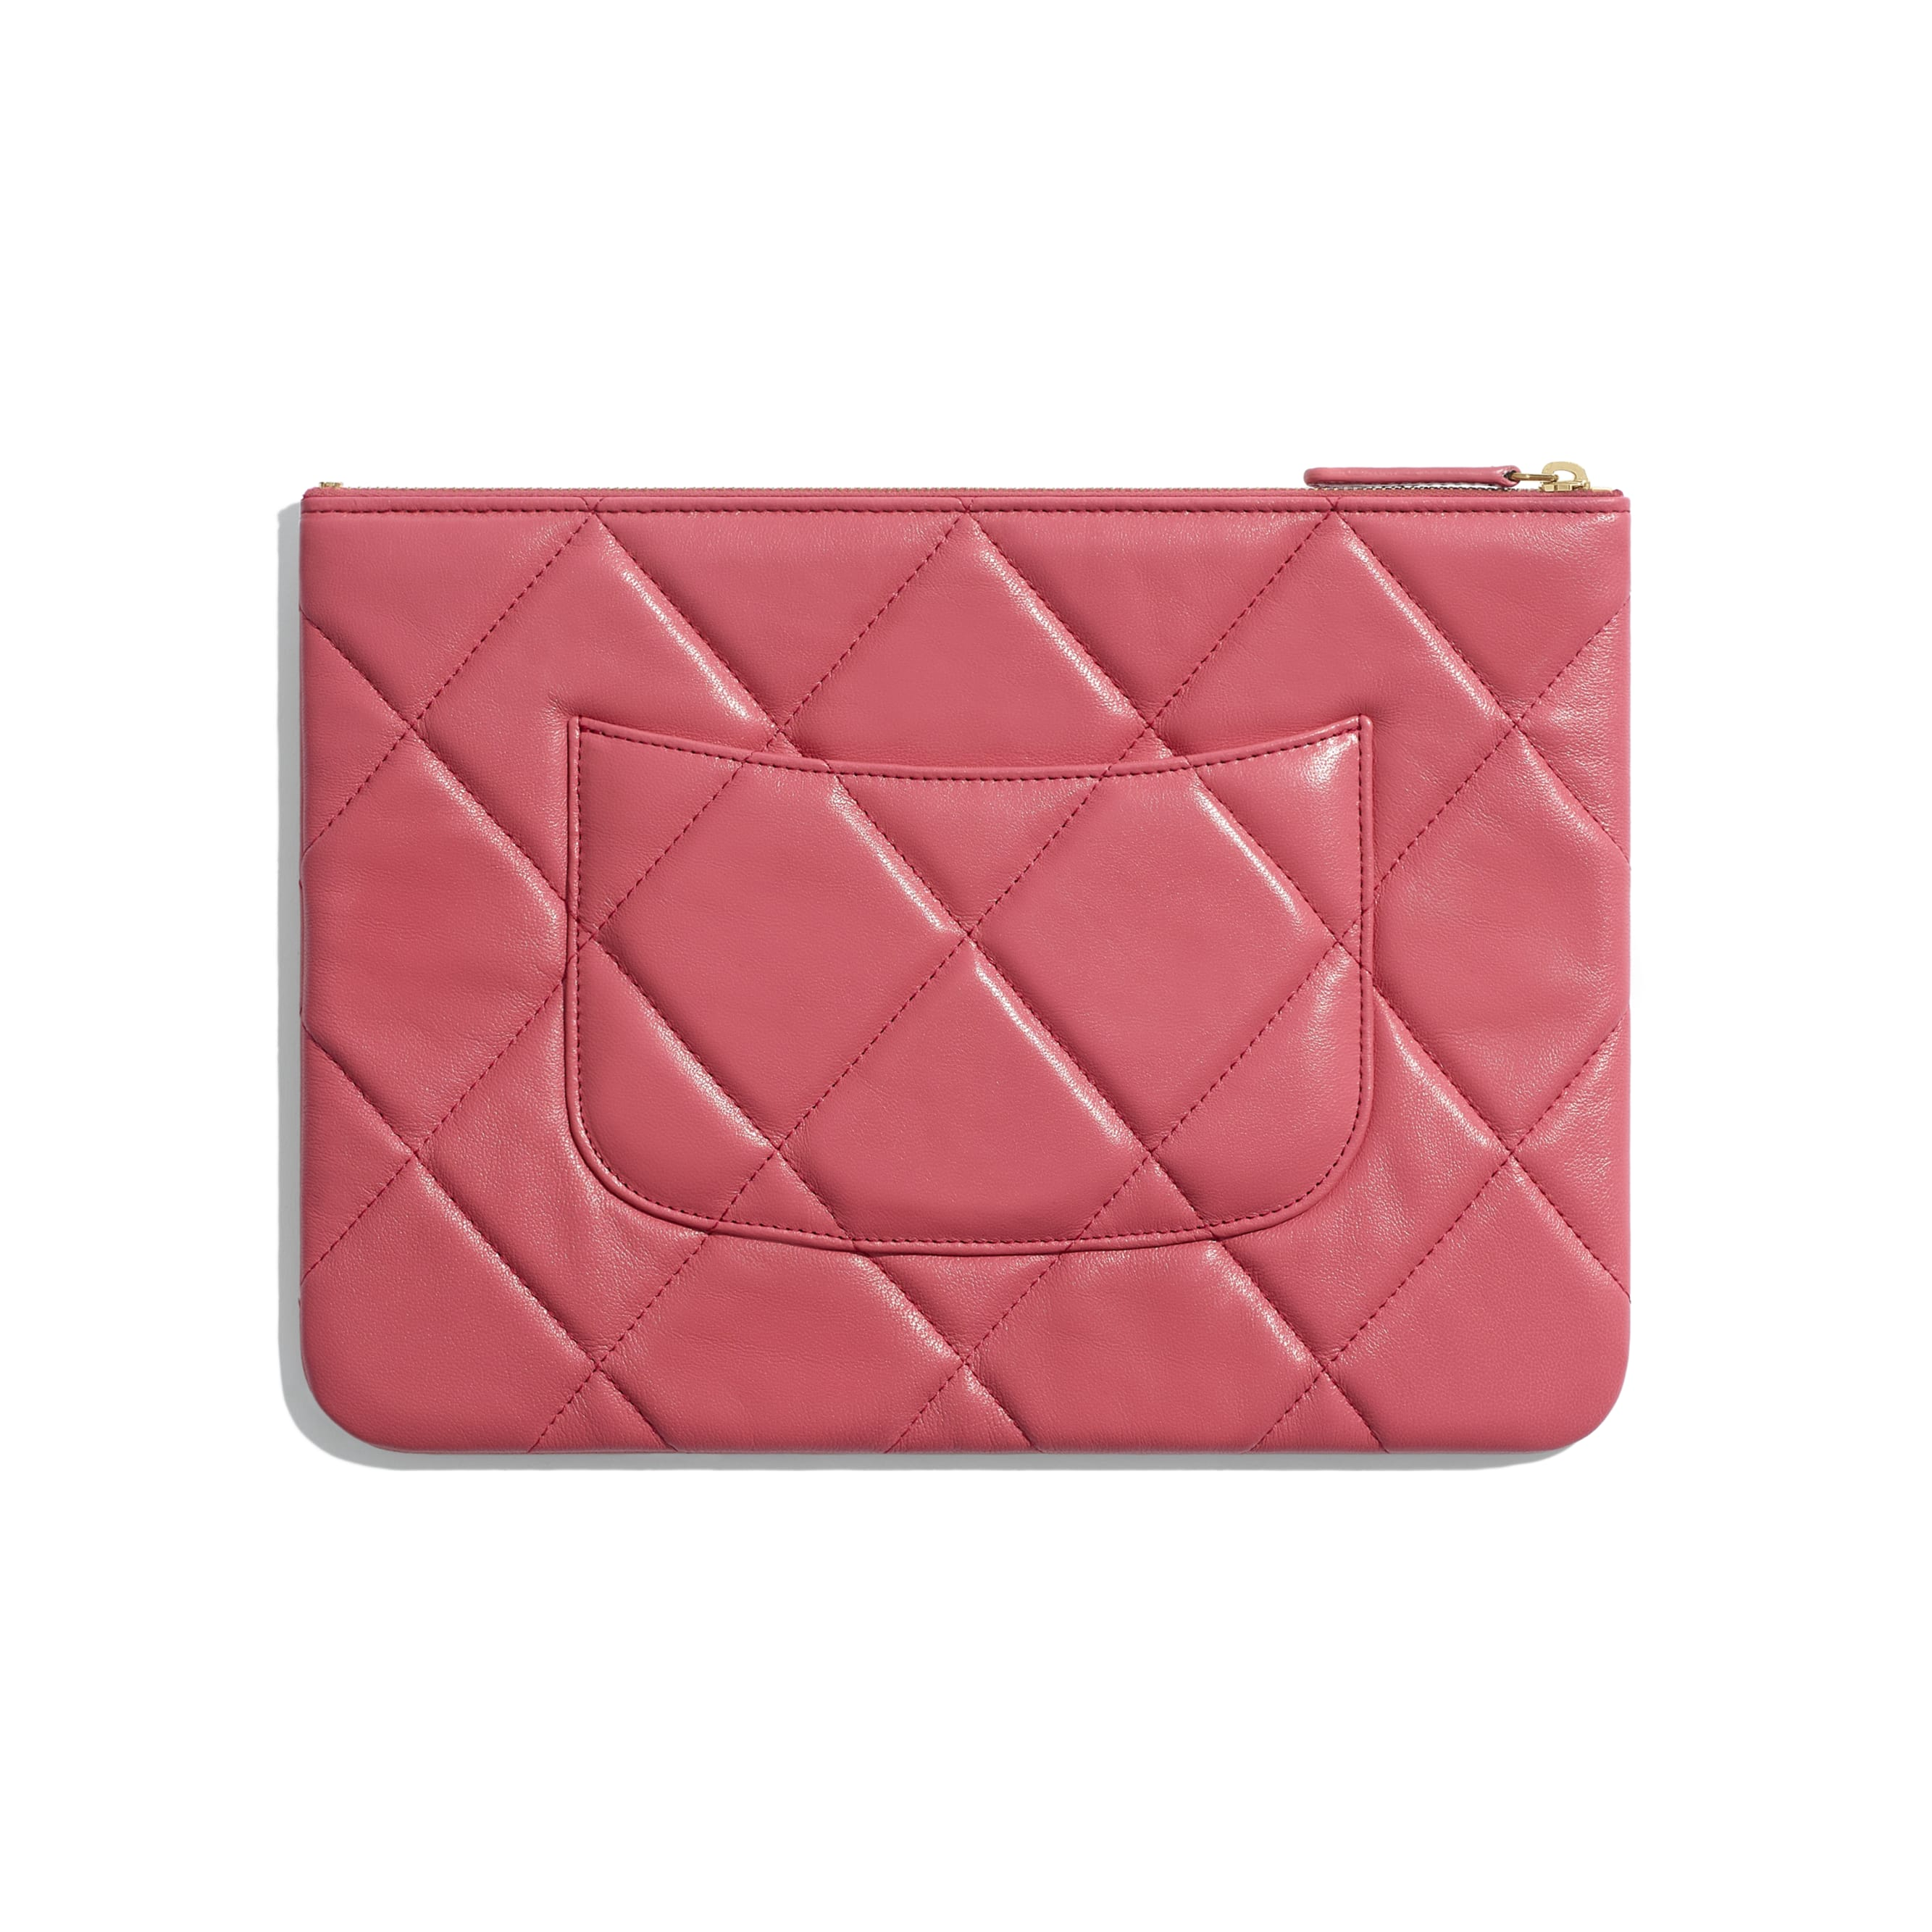 CHANEL 19 Pouch - Pink - Lambskin, Gold-Tone, Silver-Tone & Ruthenium-Finish Metal - Alternative view - see standard sized version